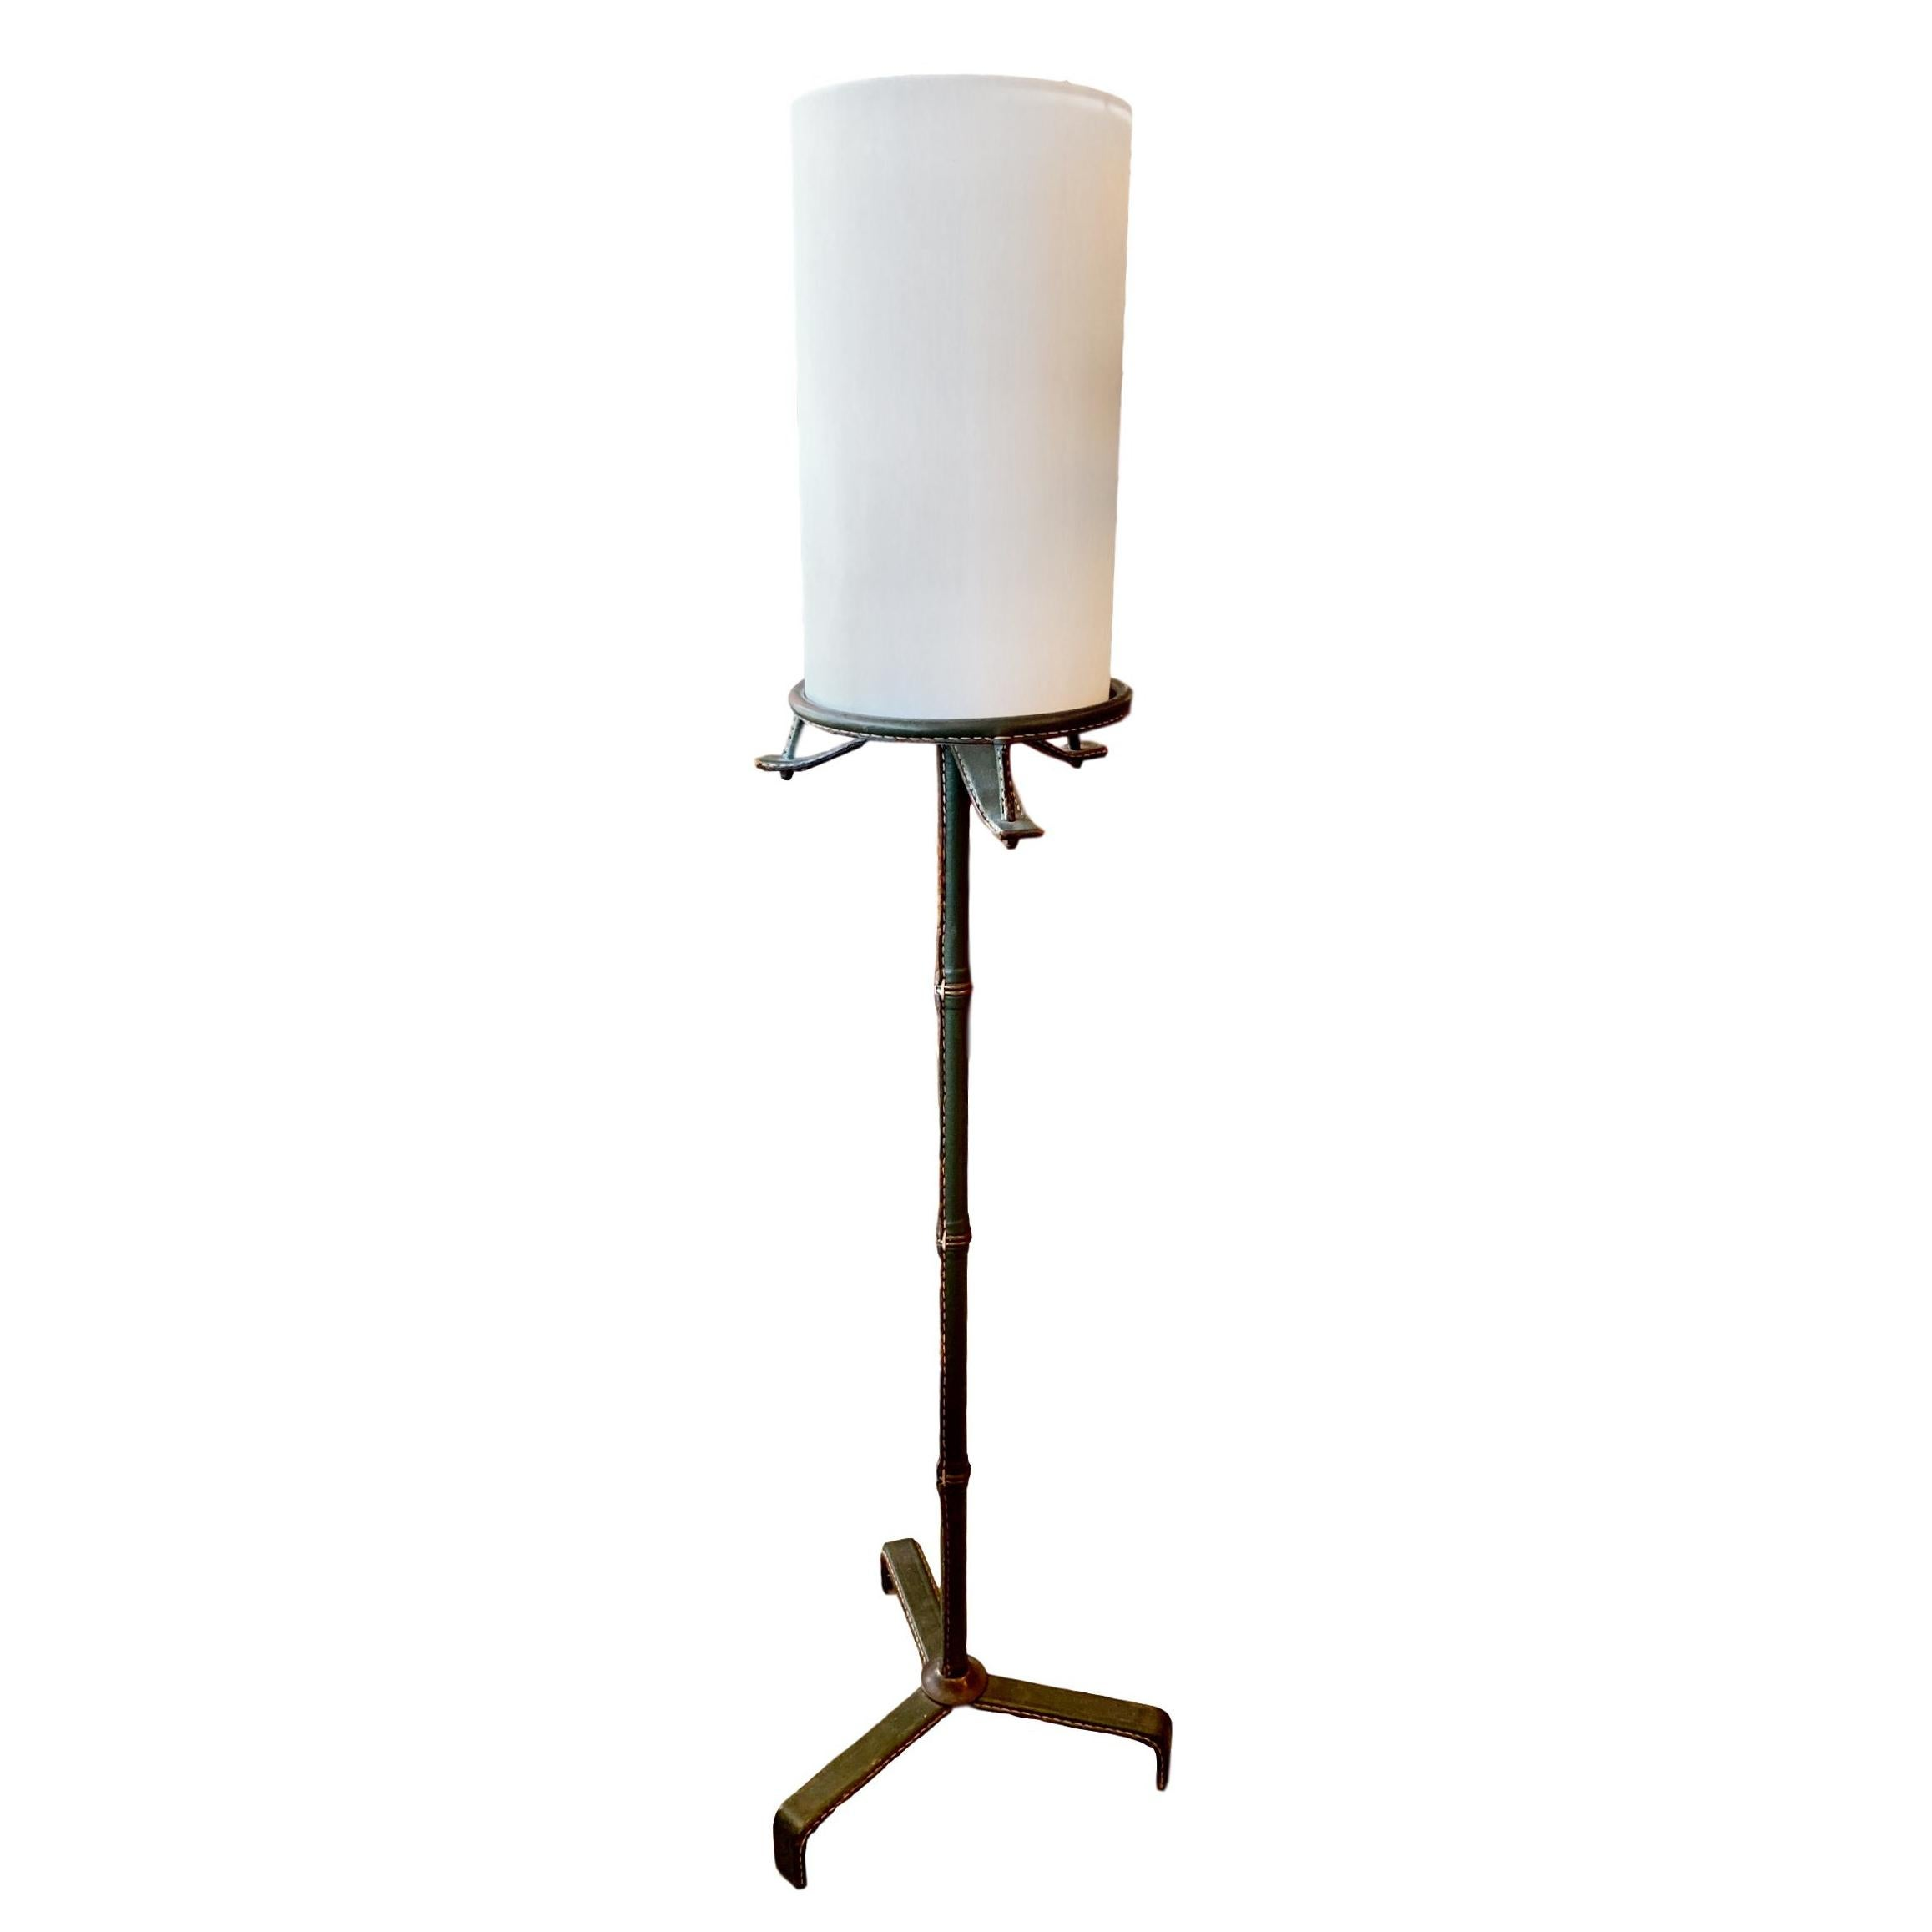 Jacques Adnet Green Leather Floor Lamp